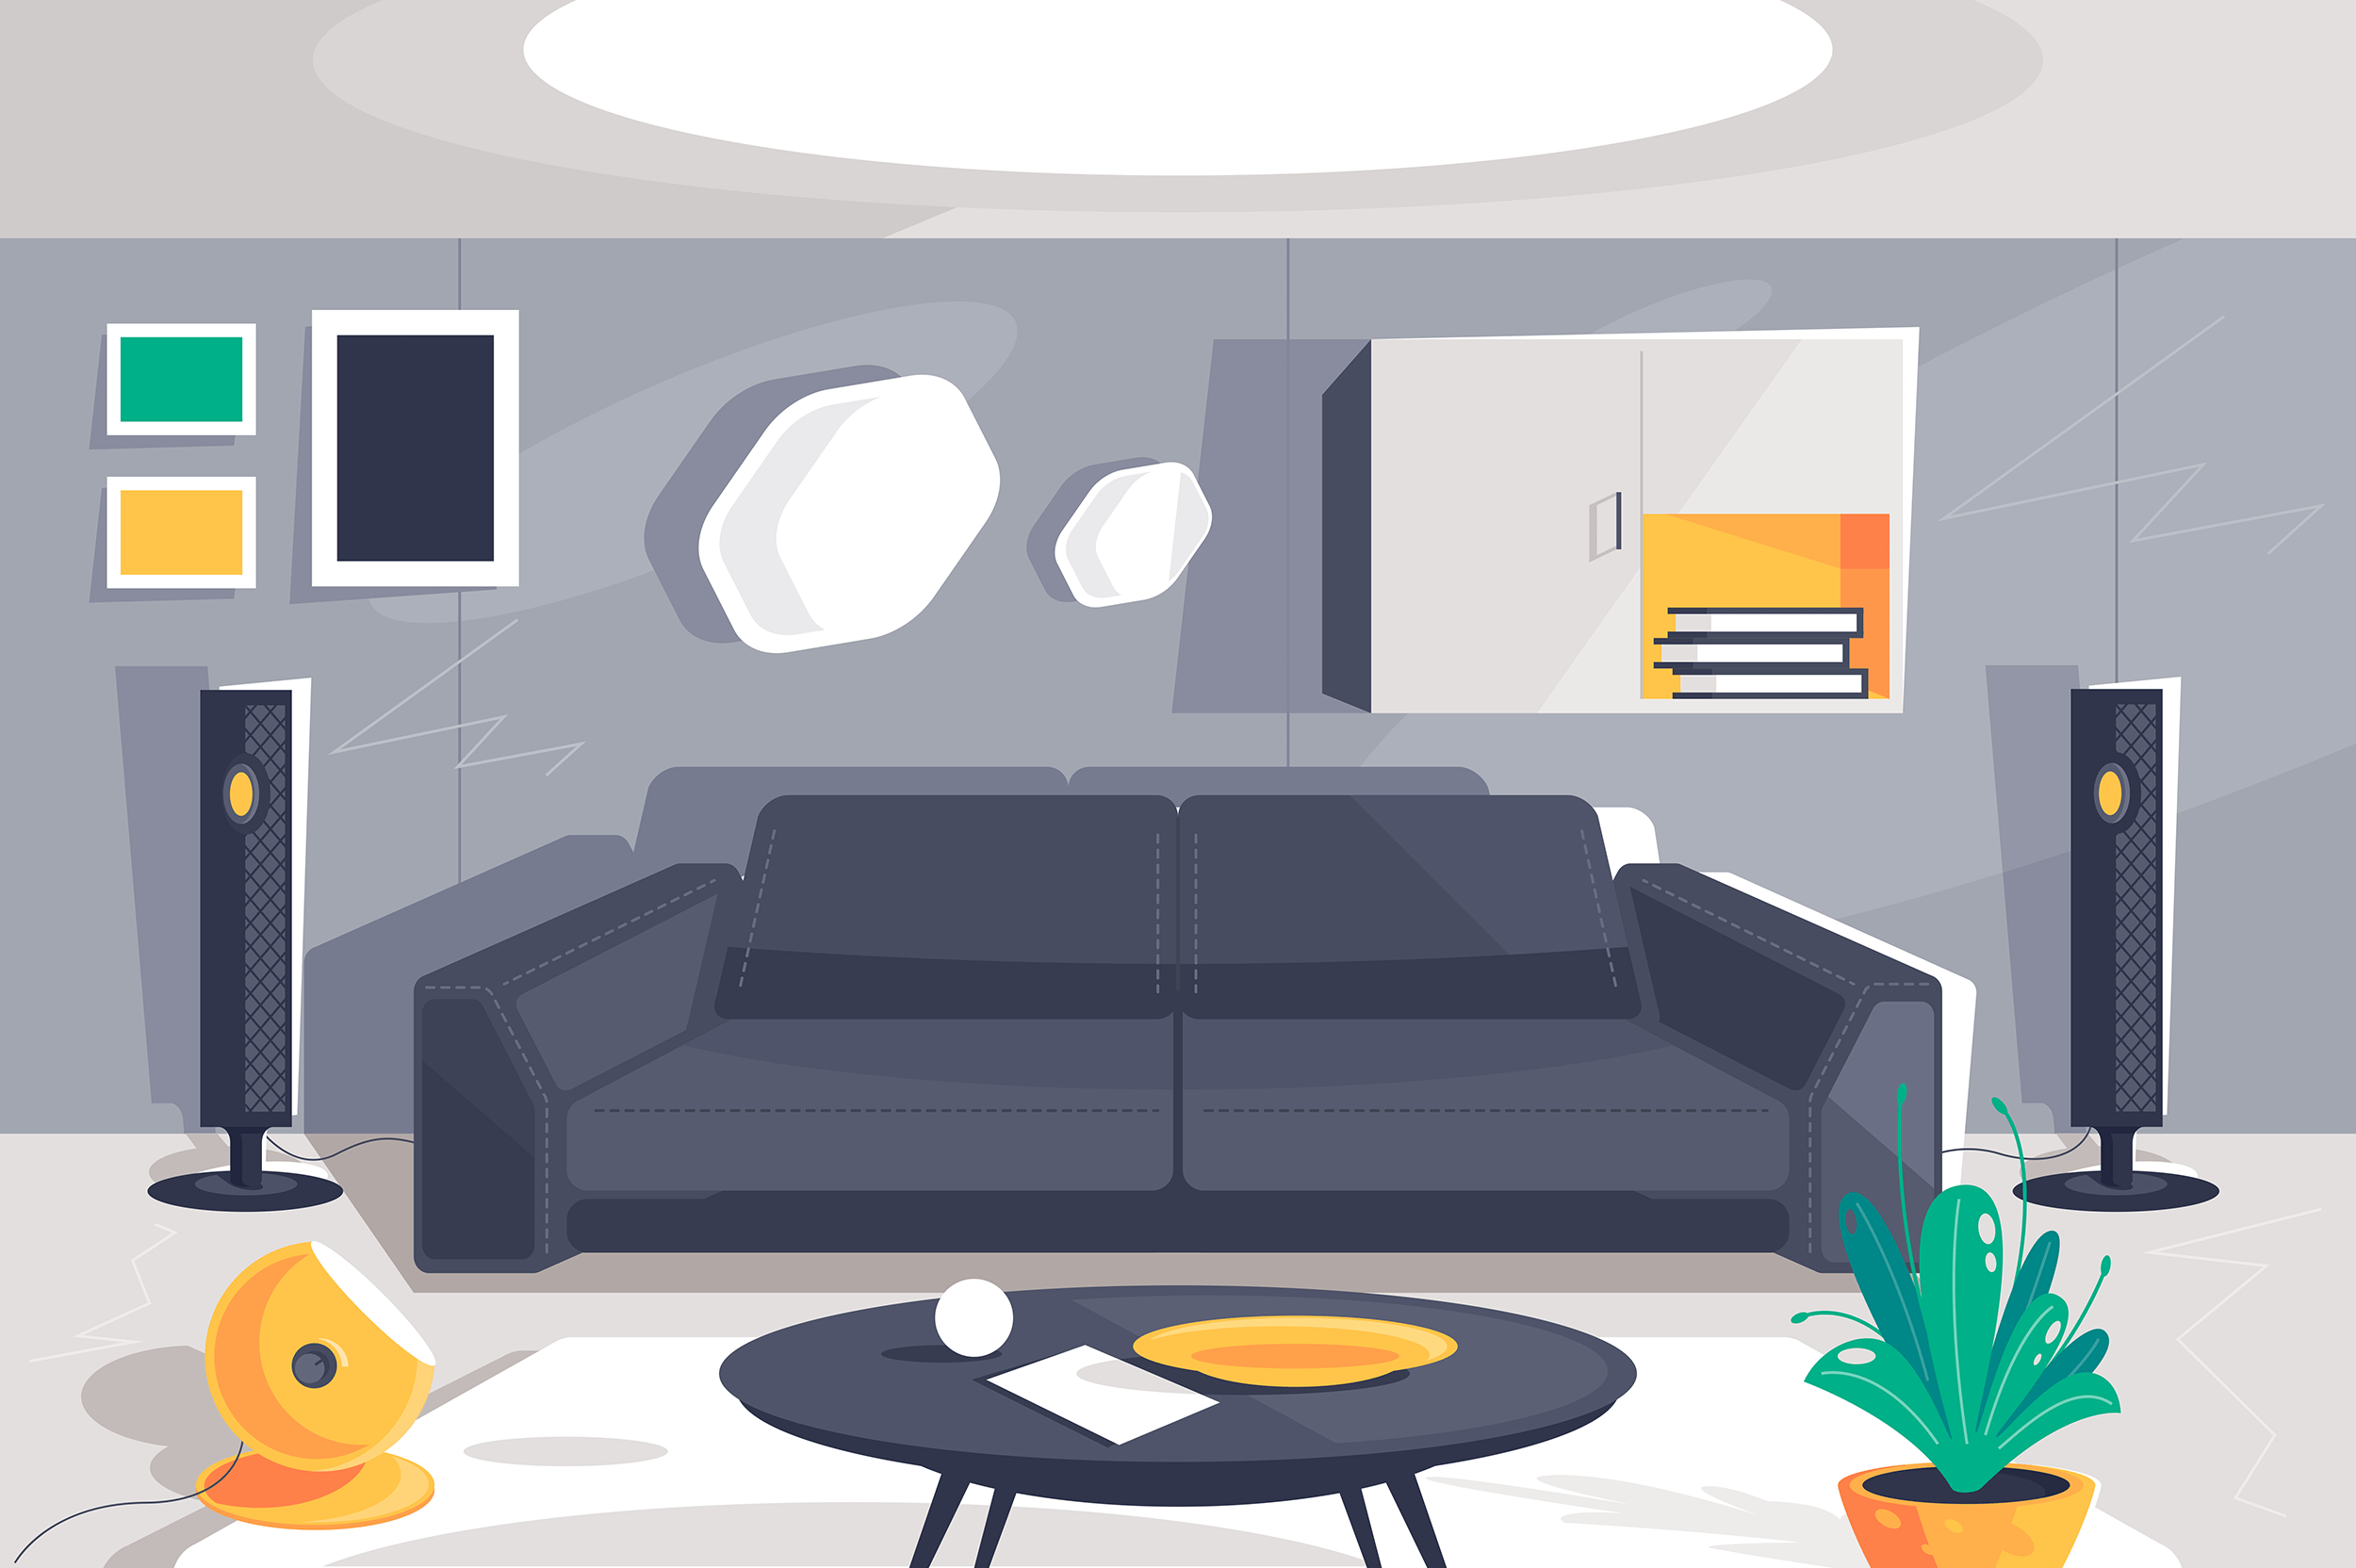 Flat modern urban room interior with home theater, sofa, plant, cupboard, table and lamp.